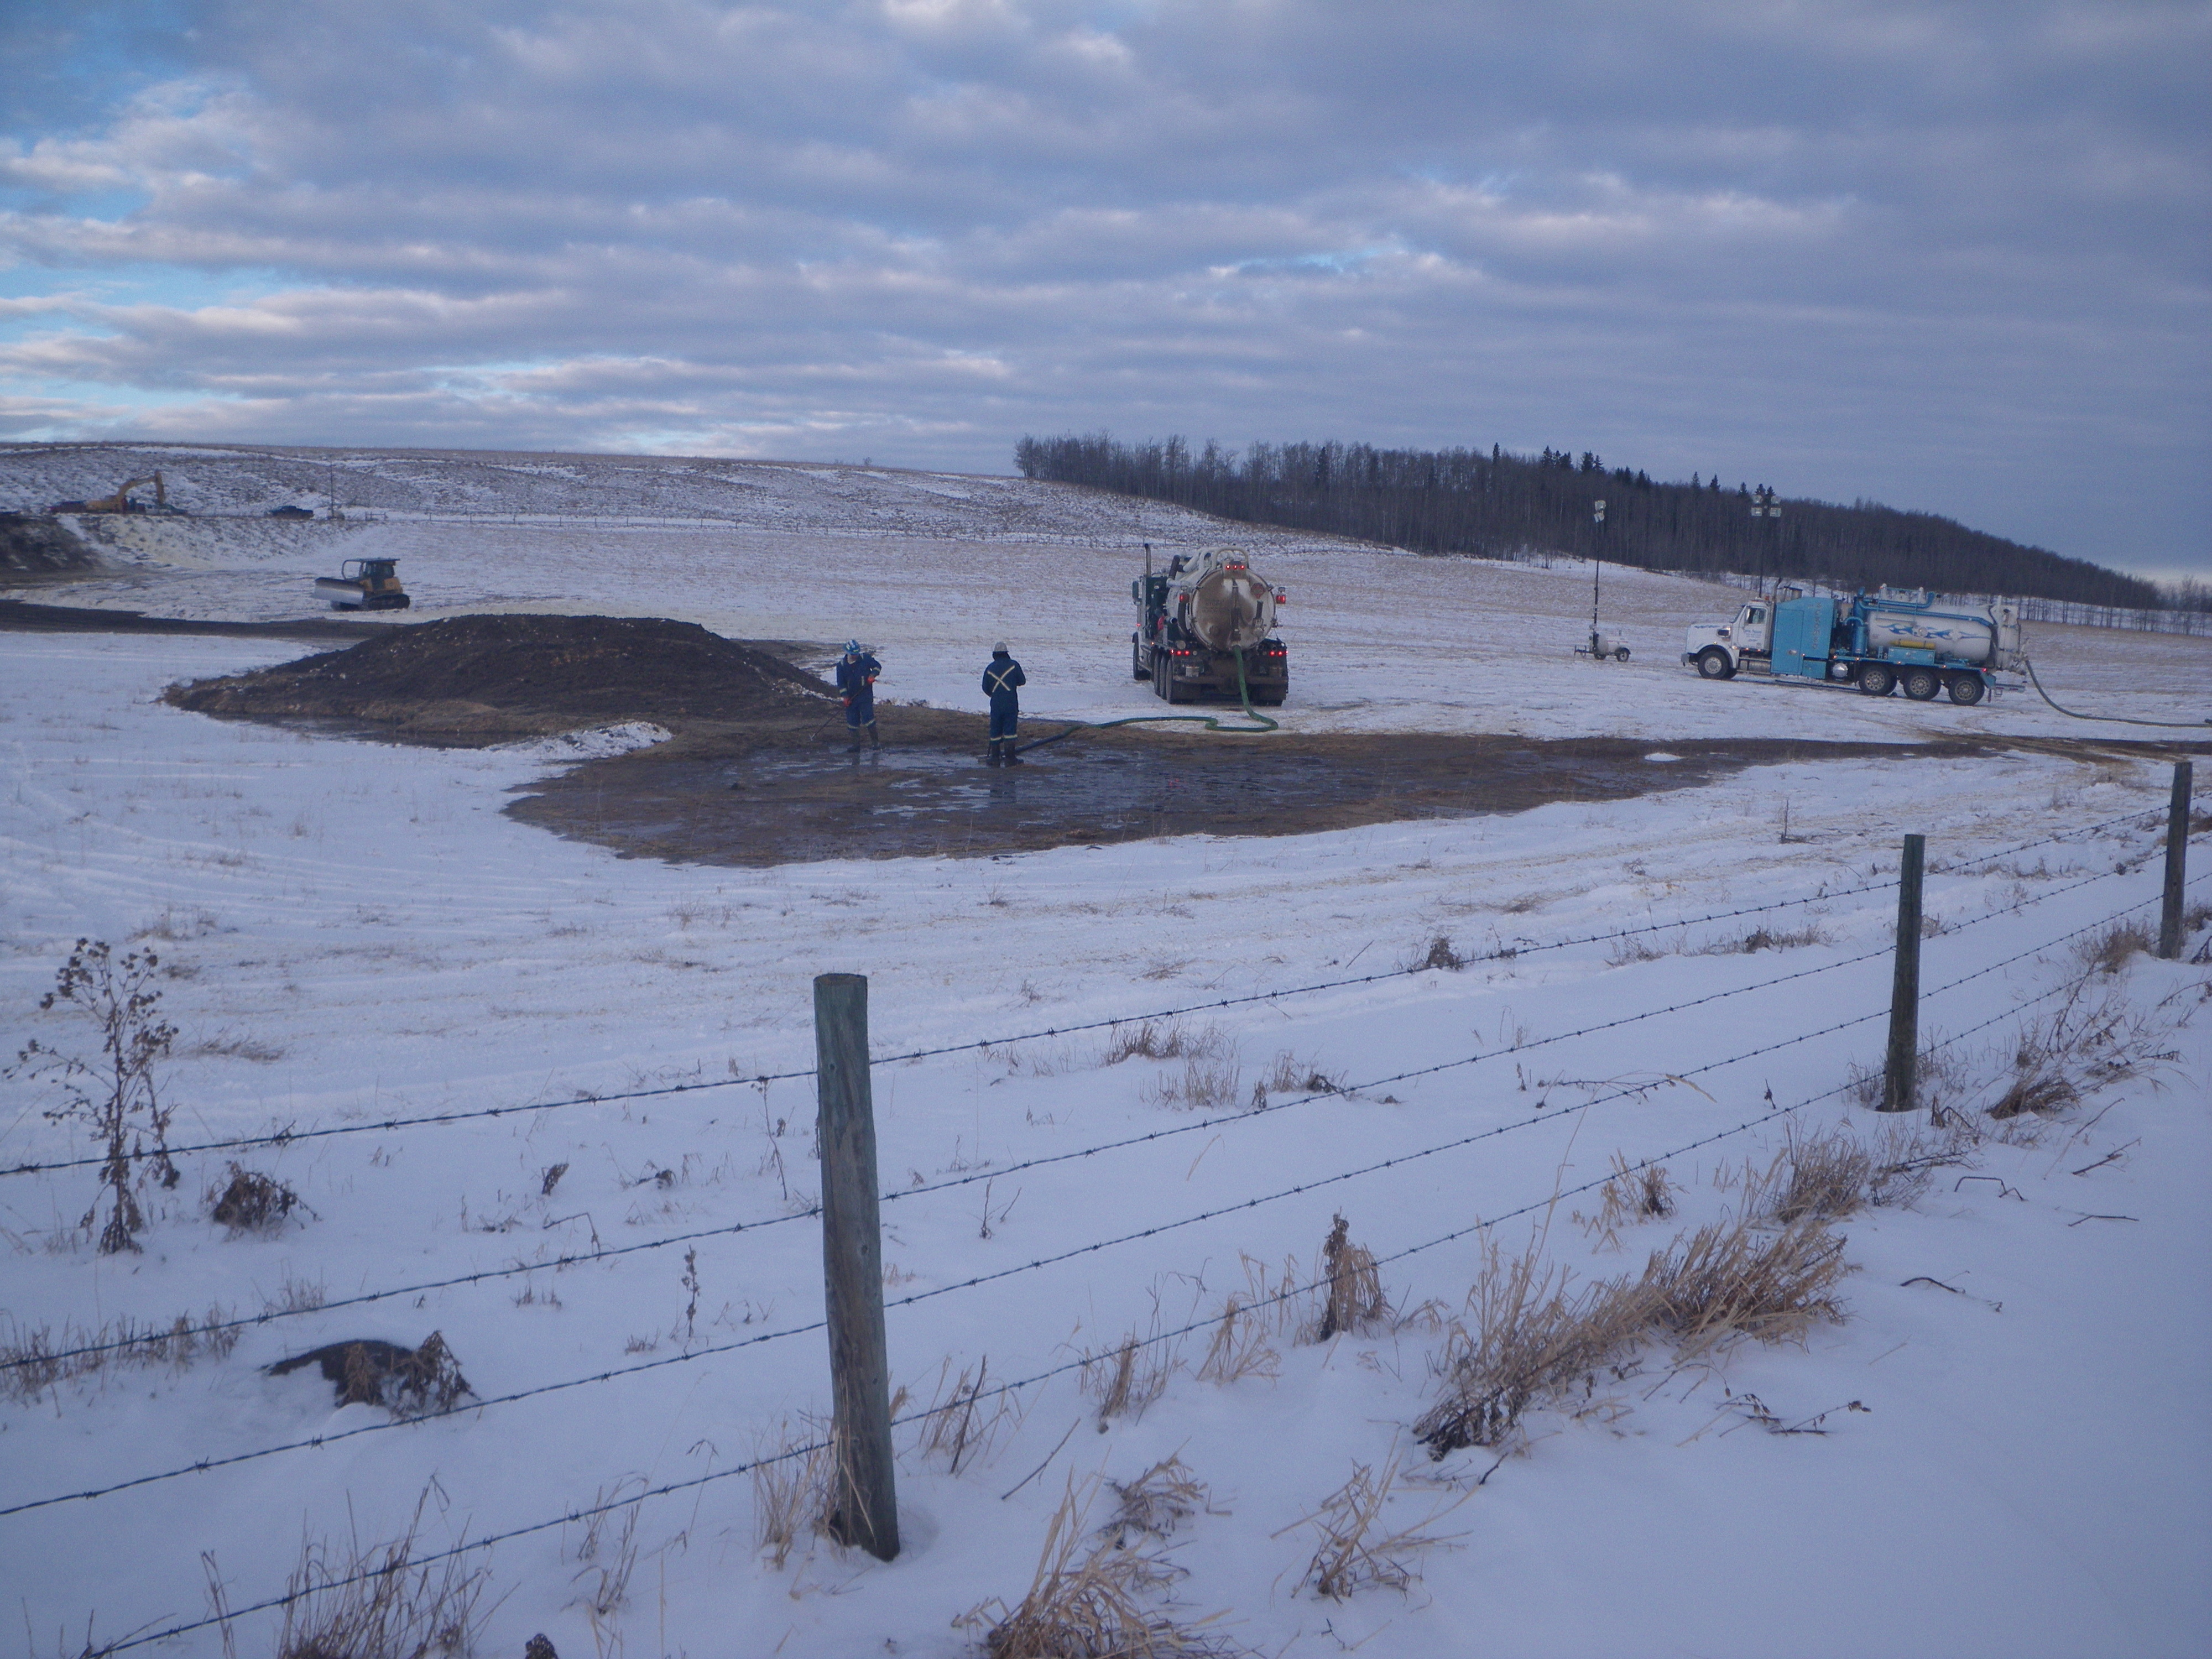 2012 01 13 Innisfail frack communication frac hit cleanup oil and undisclosed frac fluid workers no respirators